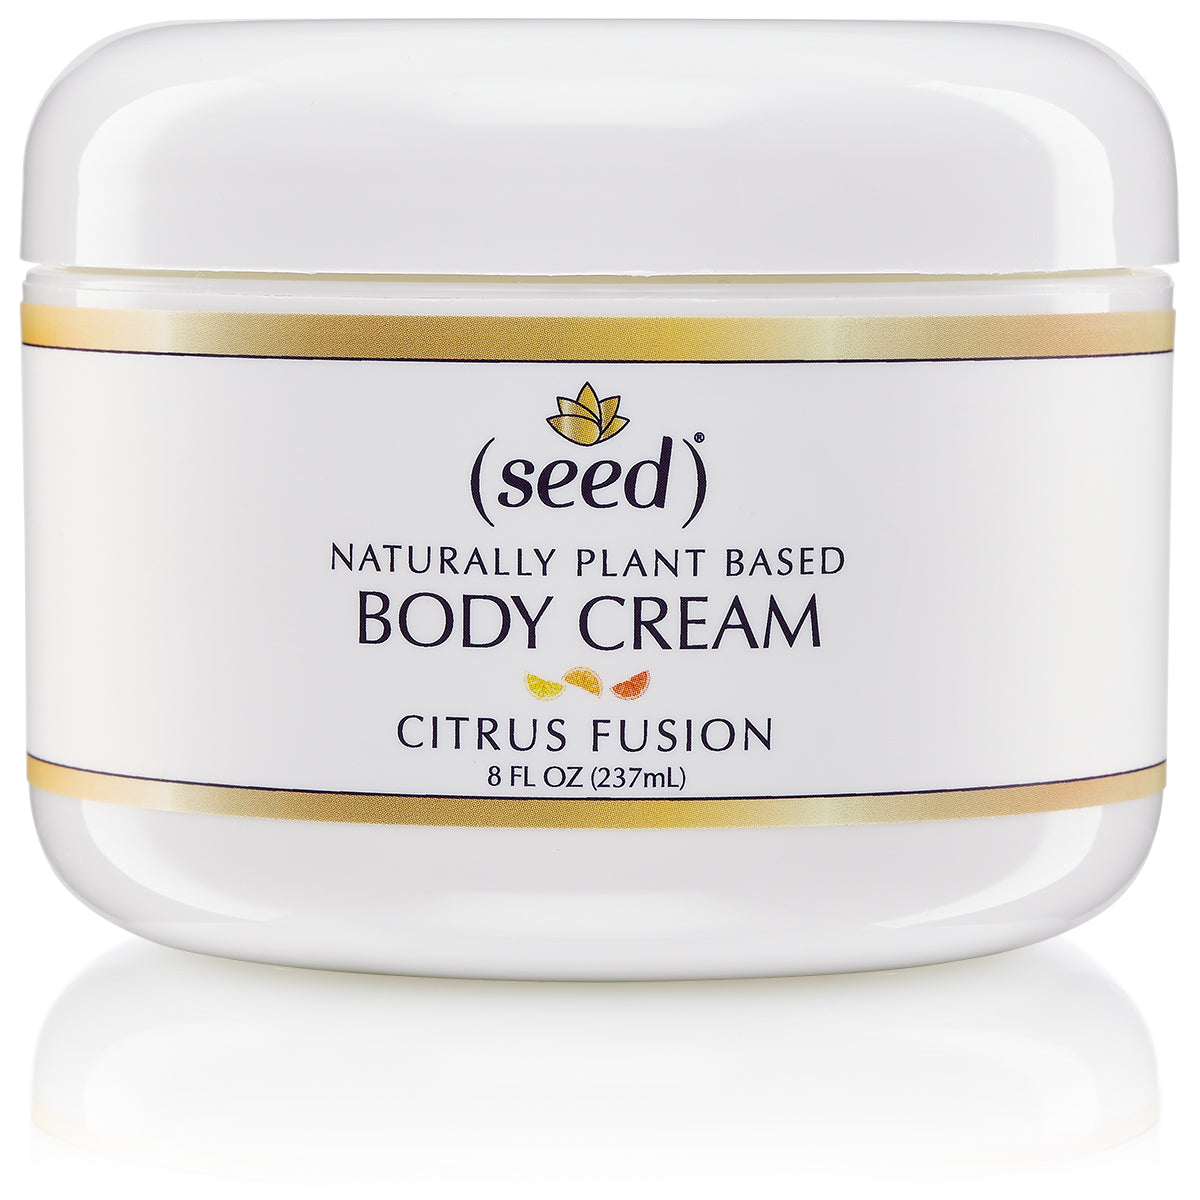 Seed Citrus Fusion Silky and Rich Body Cream